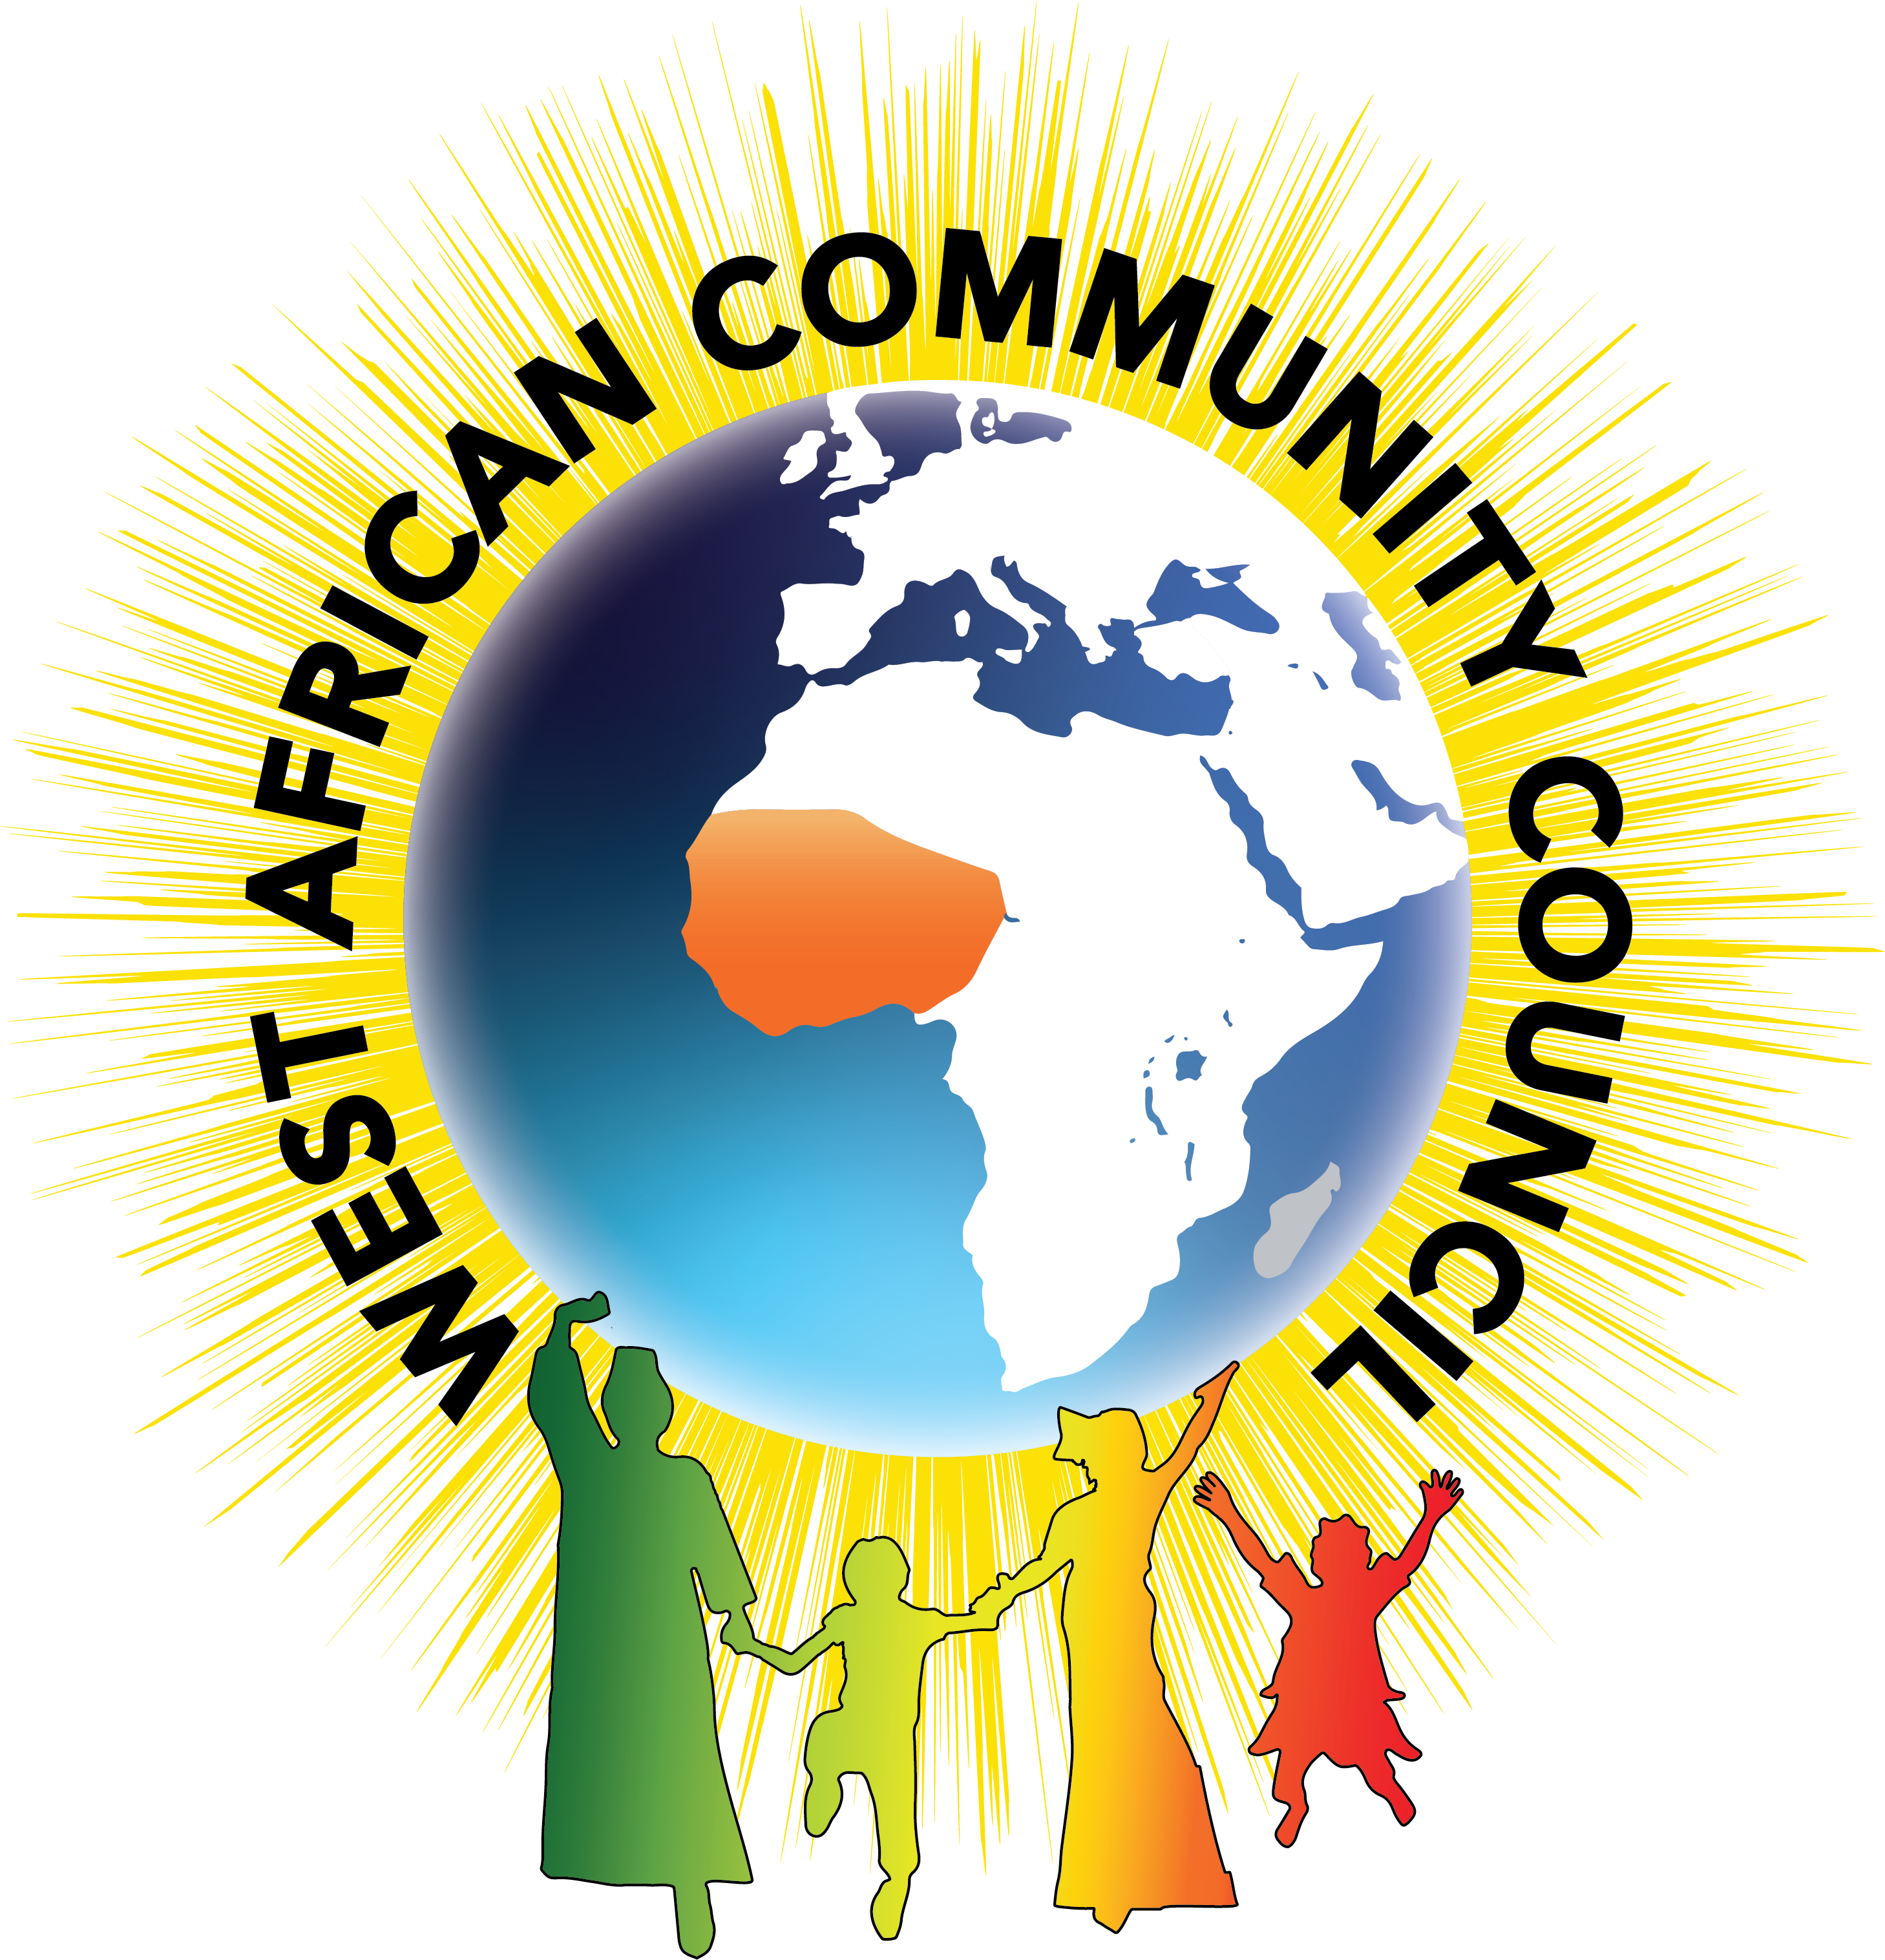 West African Community Council